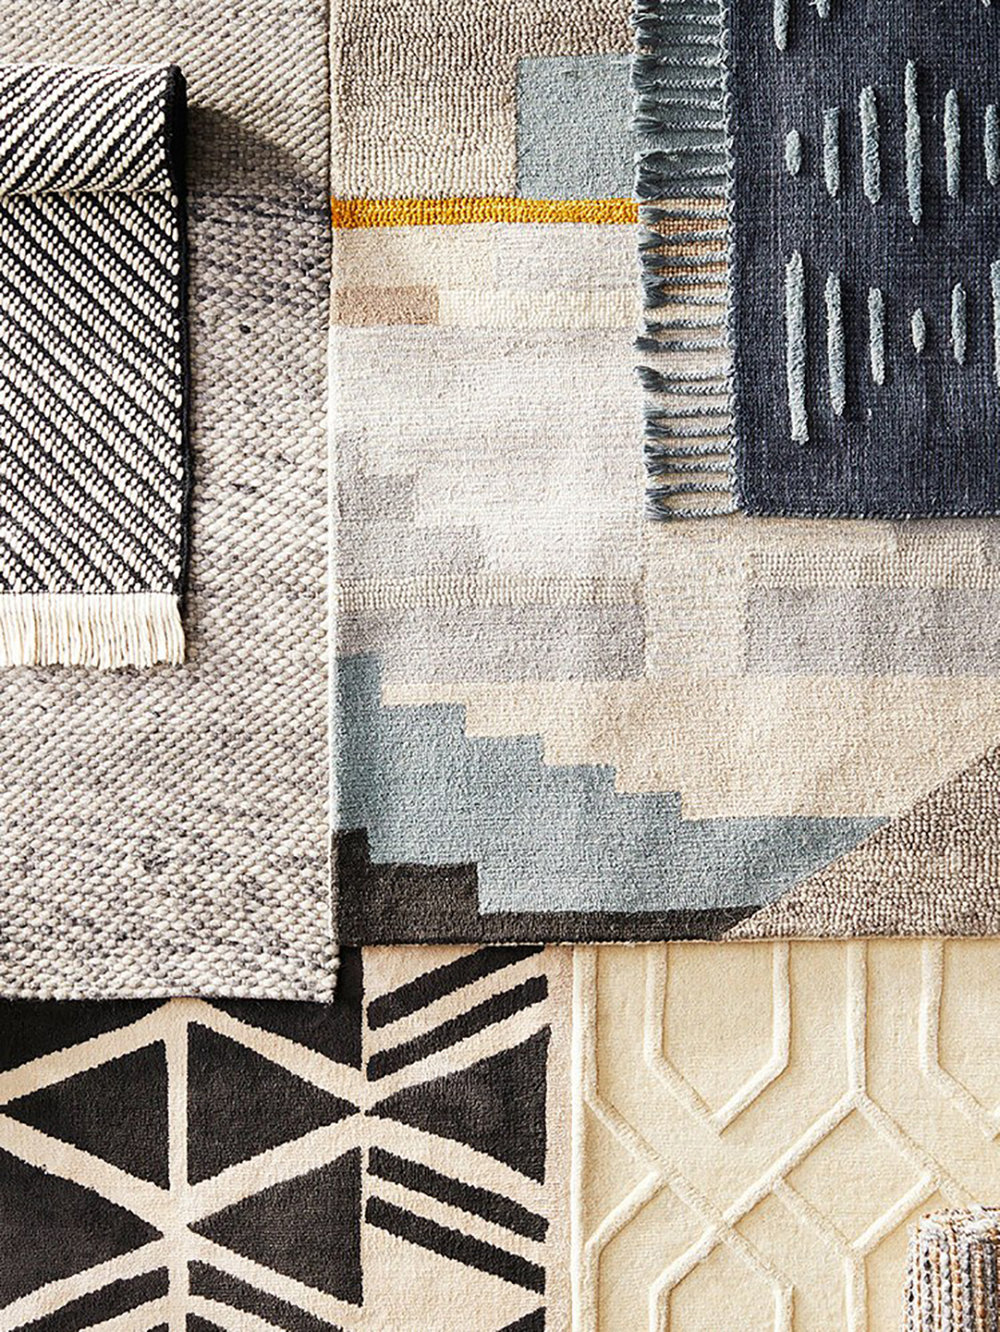 A mix of rugs from the collection - beautiful!